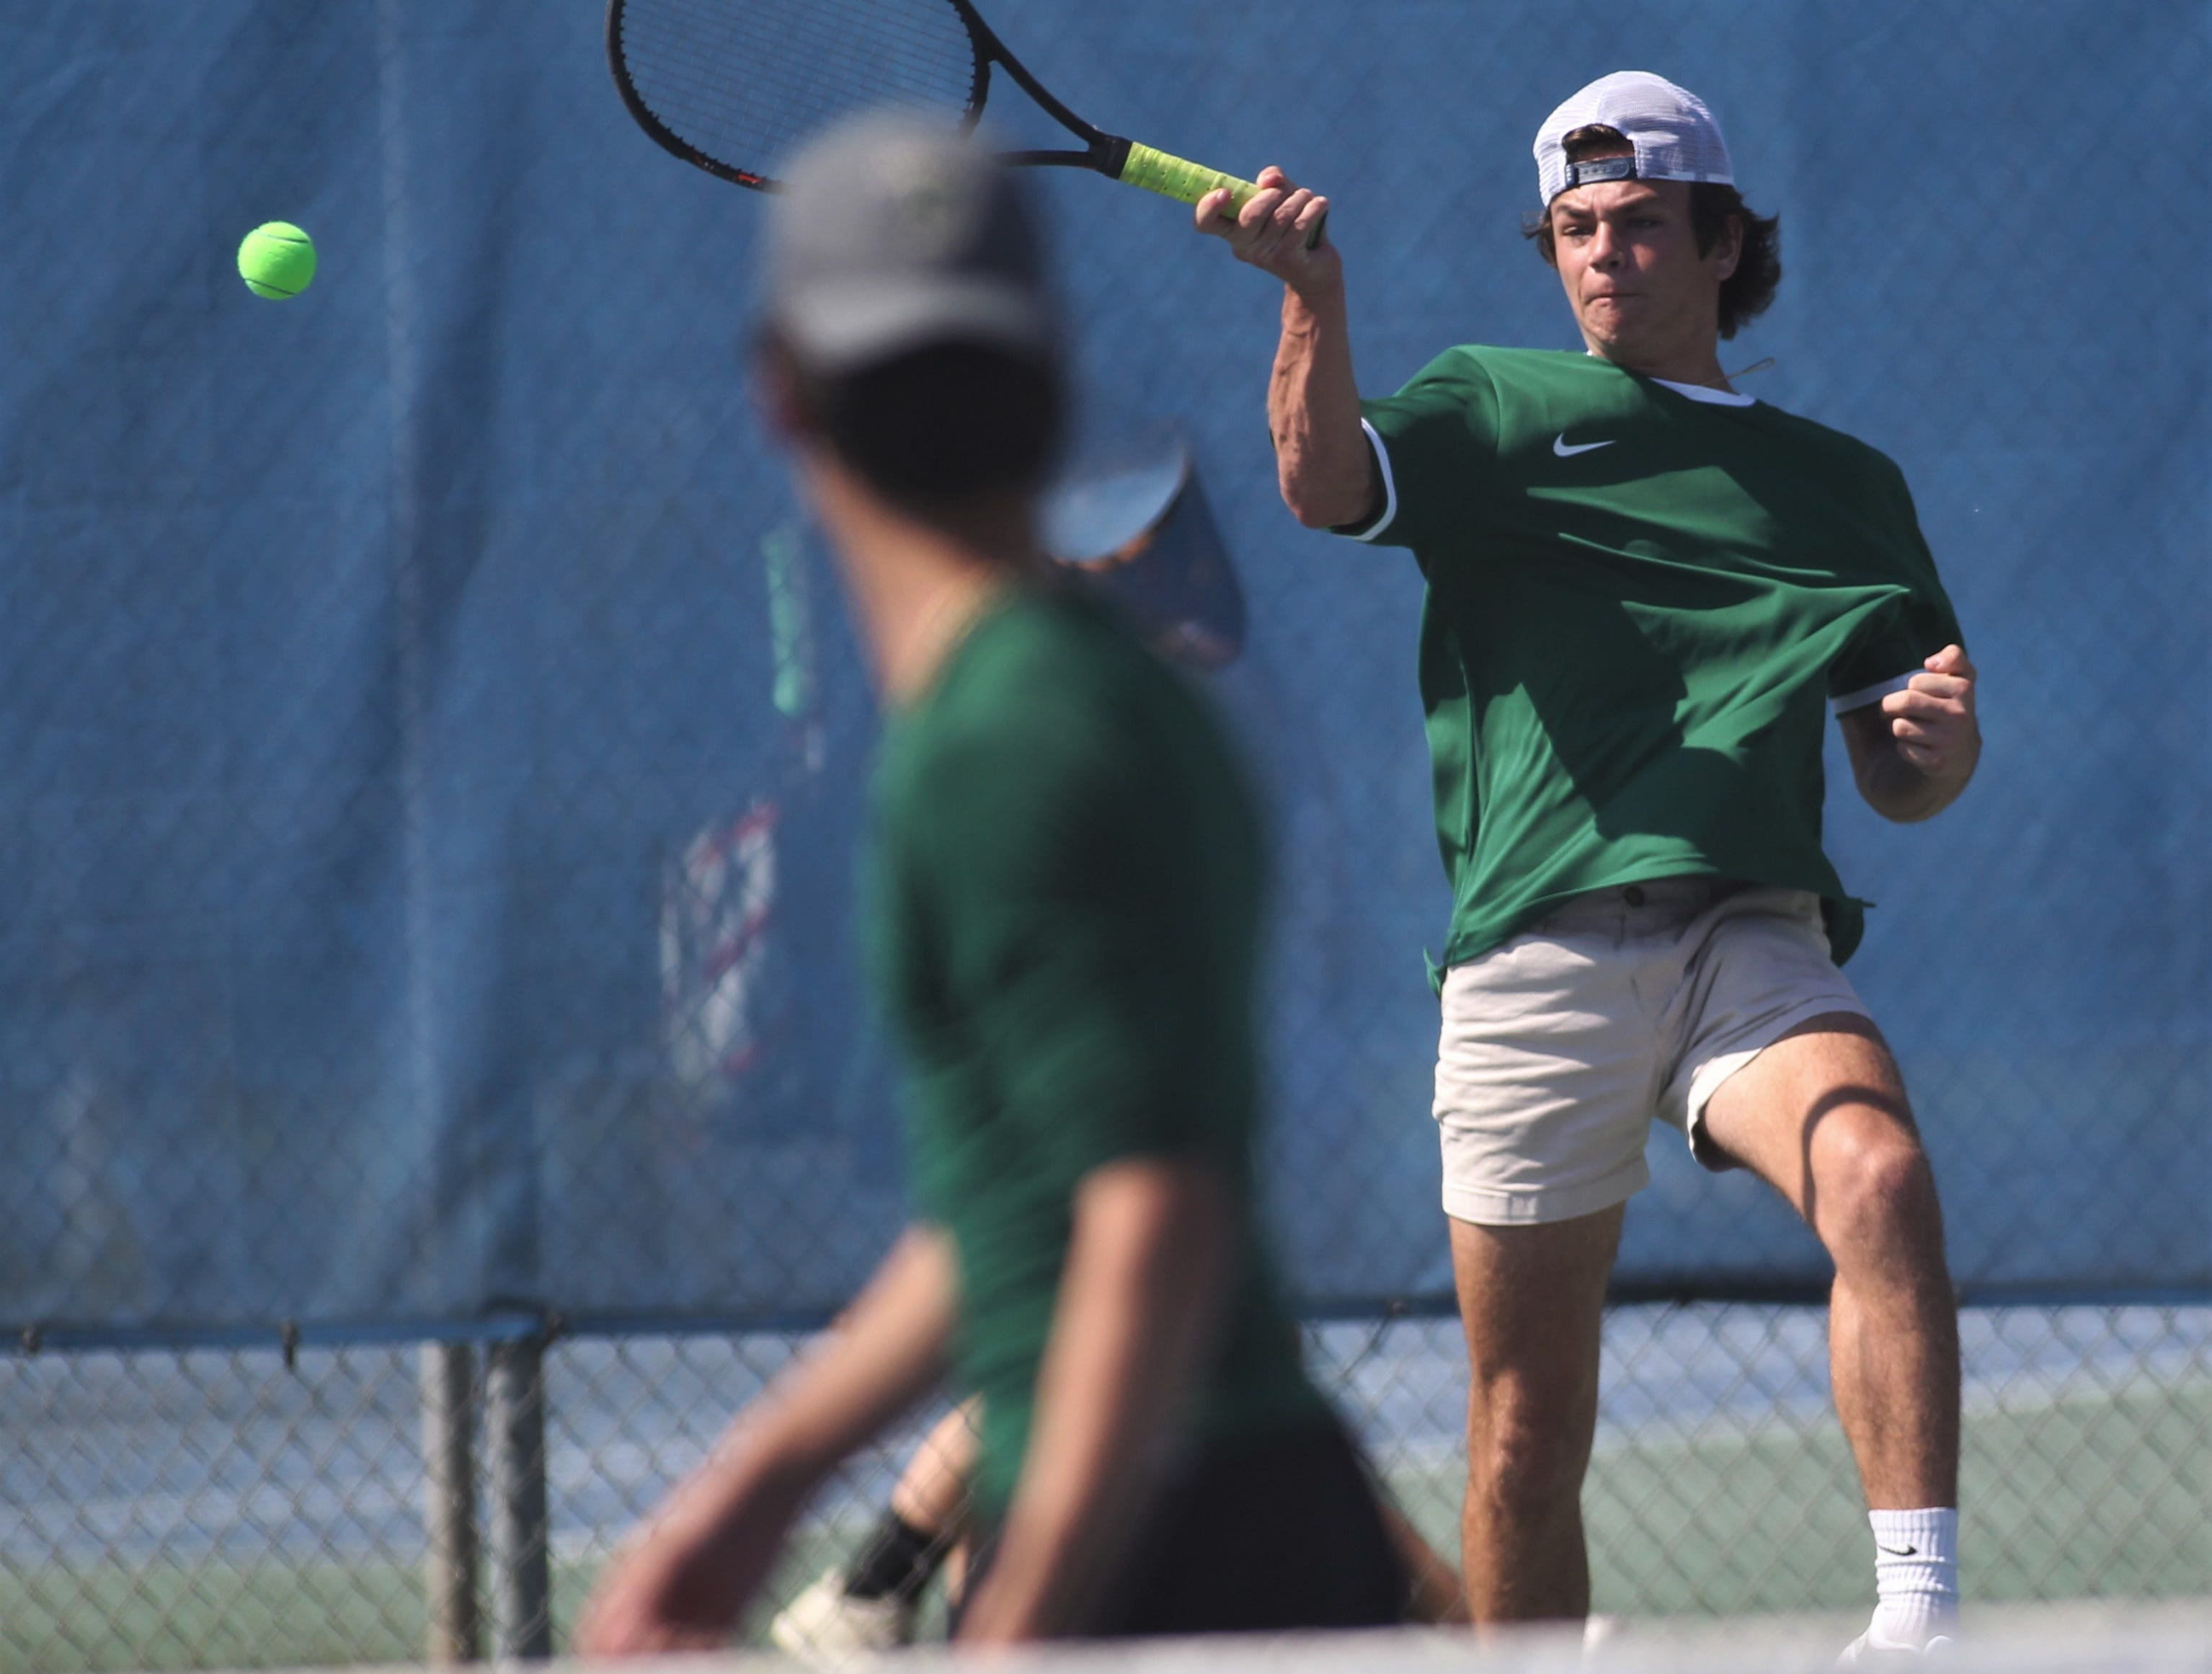 Lincoln's Jay Peacock hits a return shot during the boys and girls tennis 2019 City Tournament at Tom Brown Park on March 12, 2019.